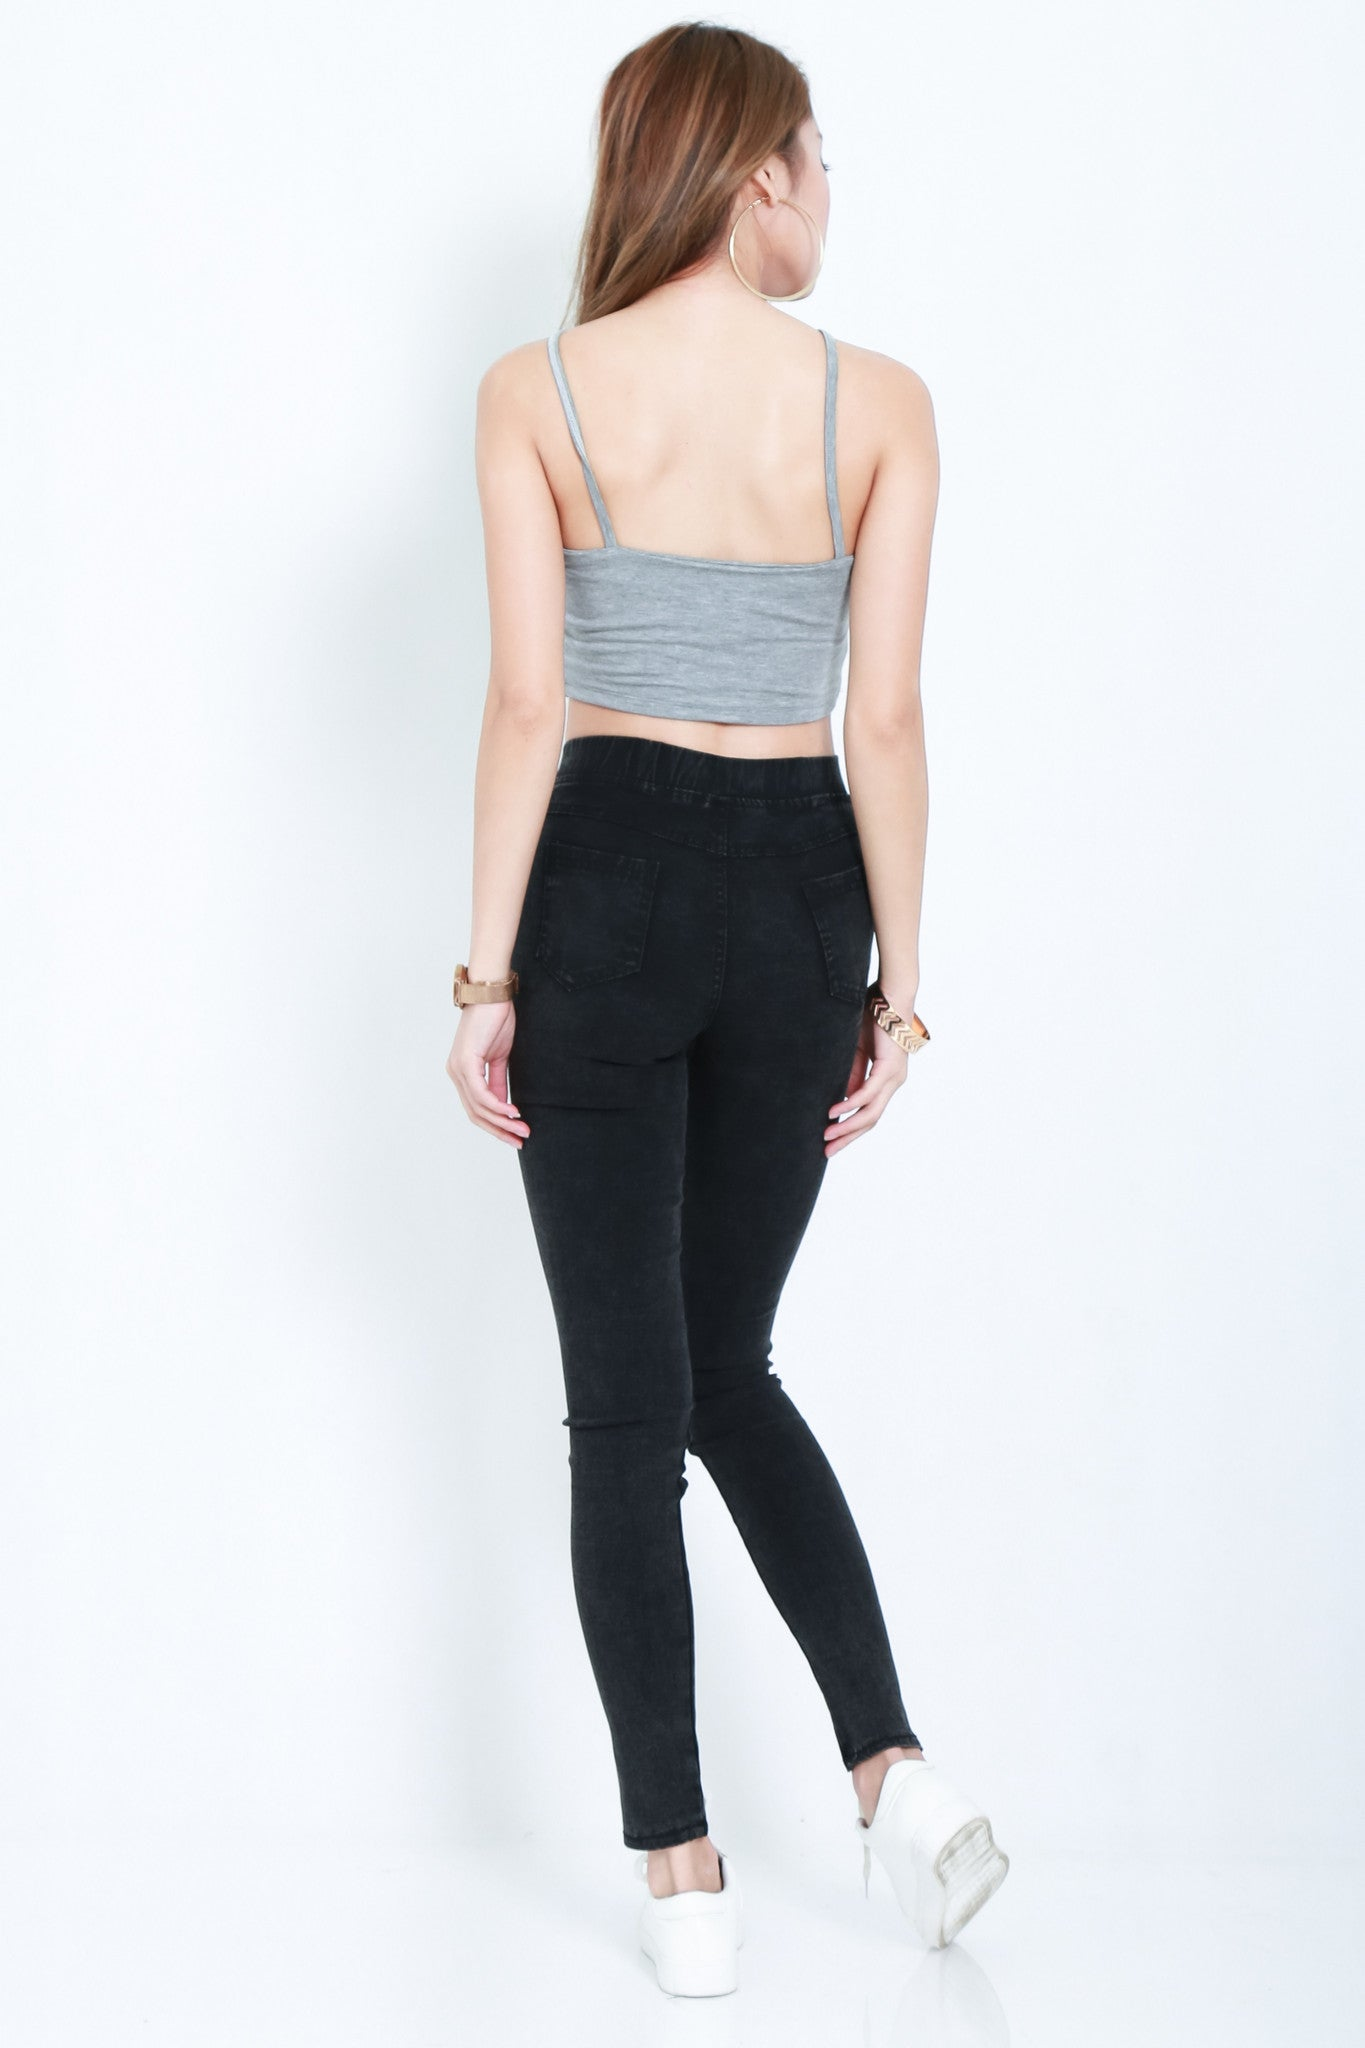 *RESTOCKED* WEBBED CROP TOP IN LIGHT GREY